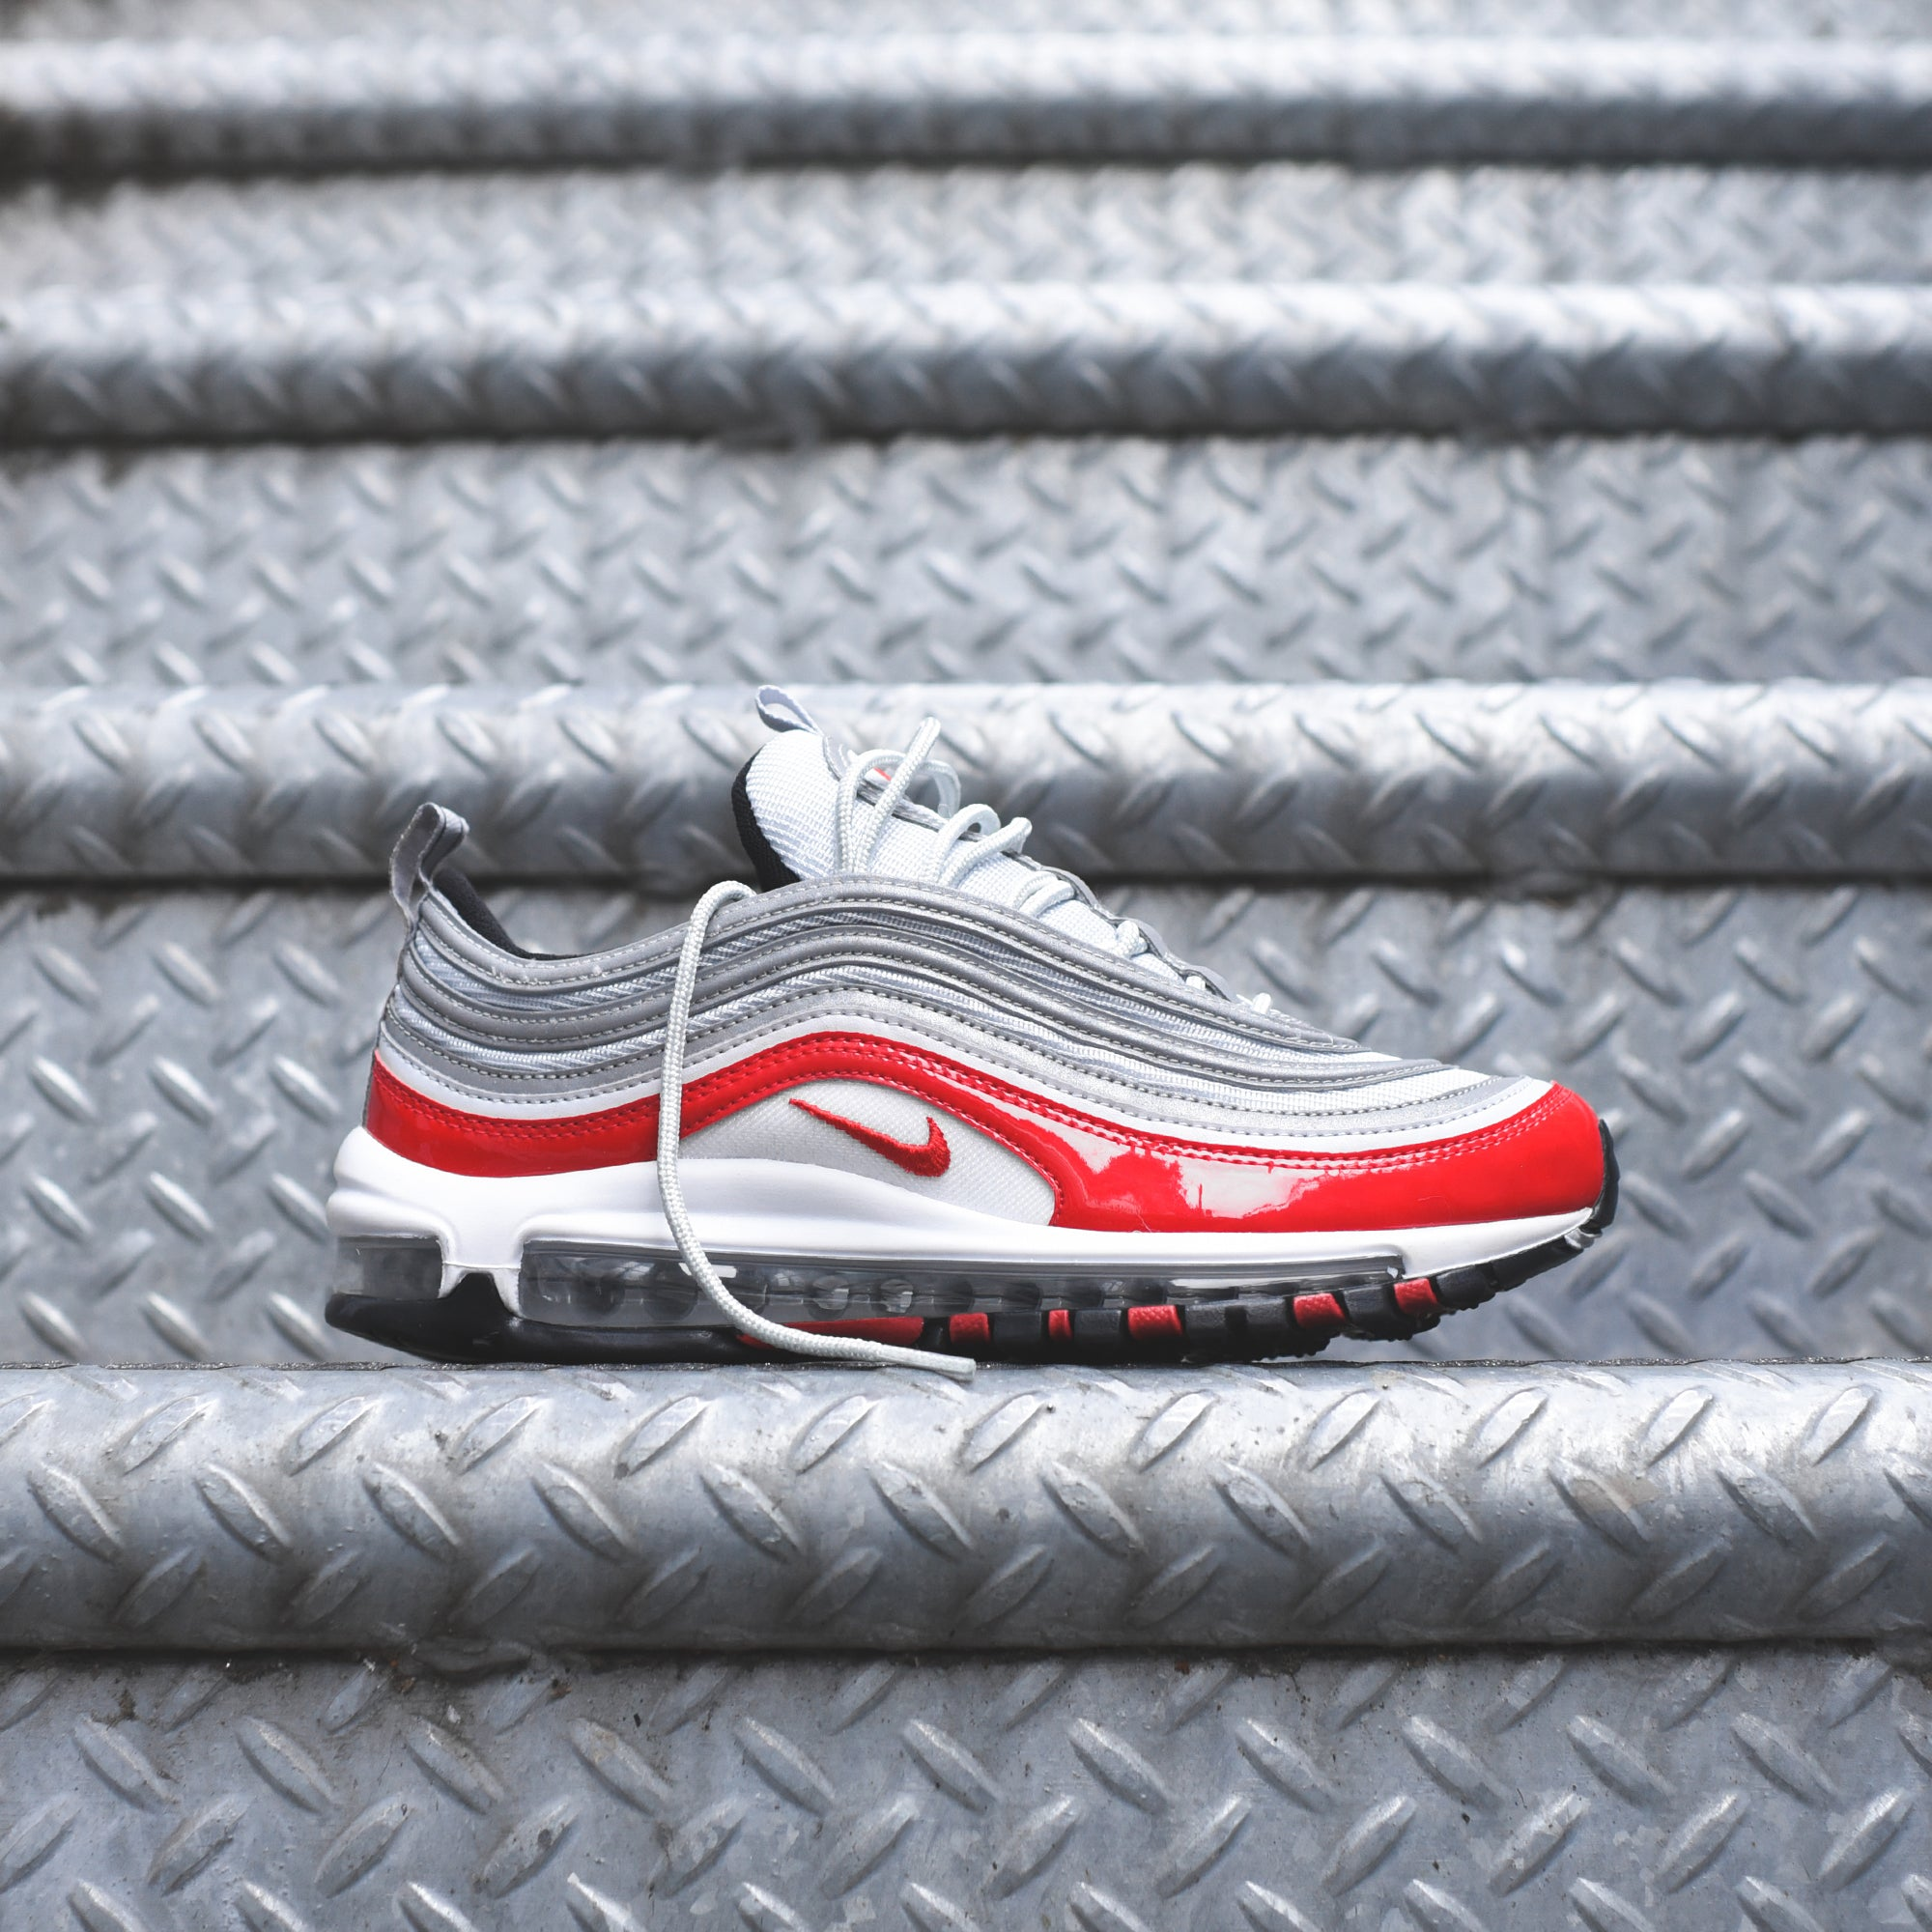 1393c1f7e8 Nike Air Max 97 - Pure Platinum / University Red. July 03, 2018. -4. -1